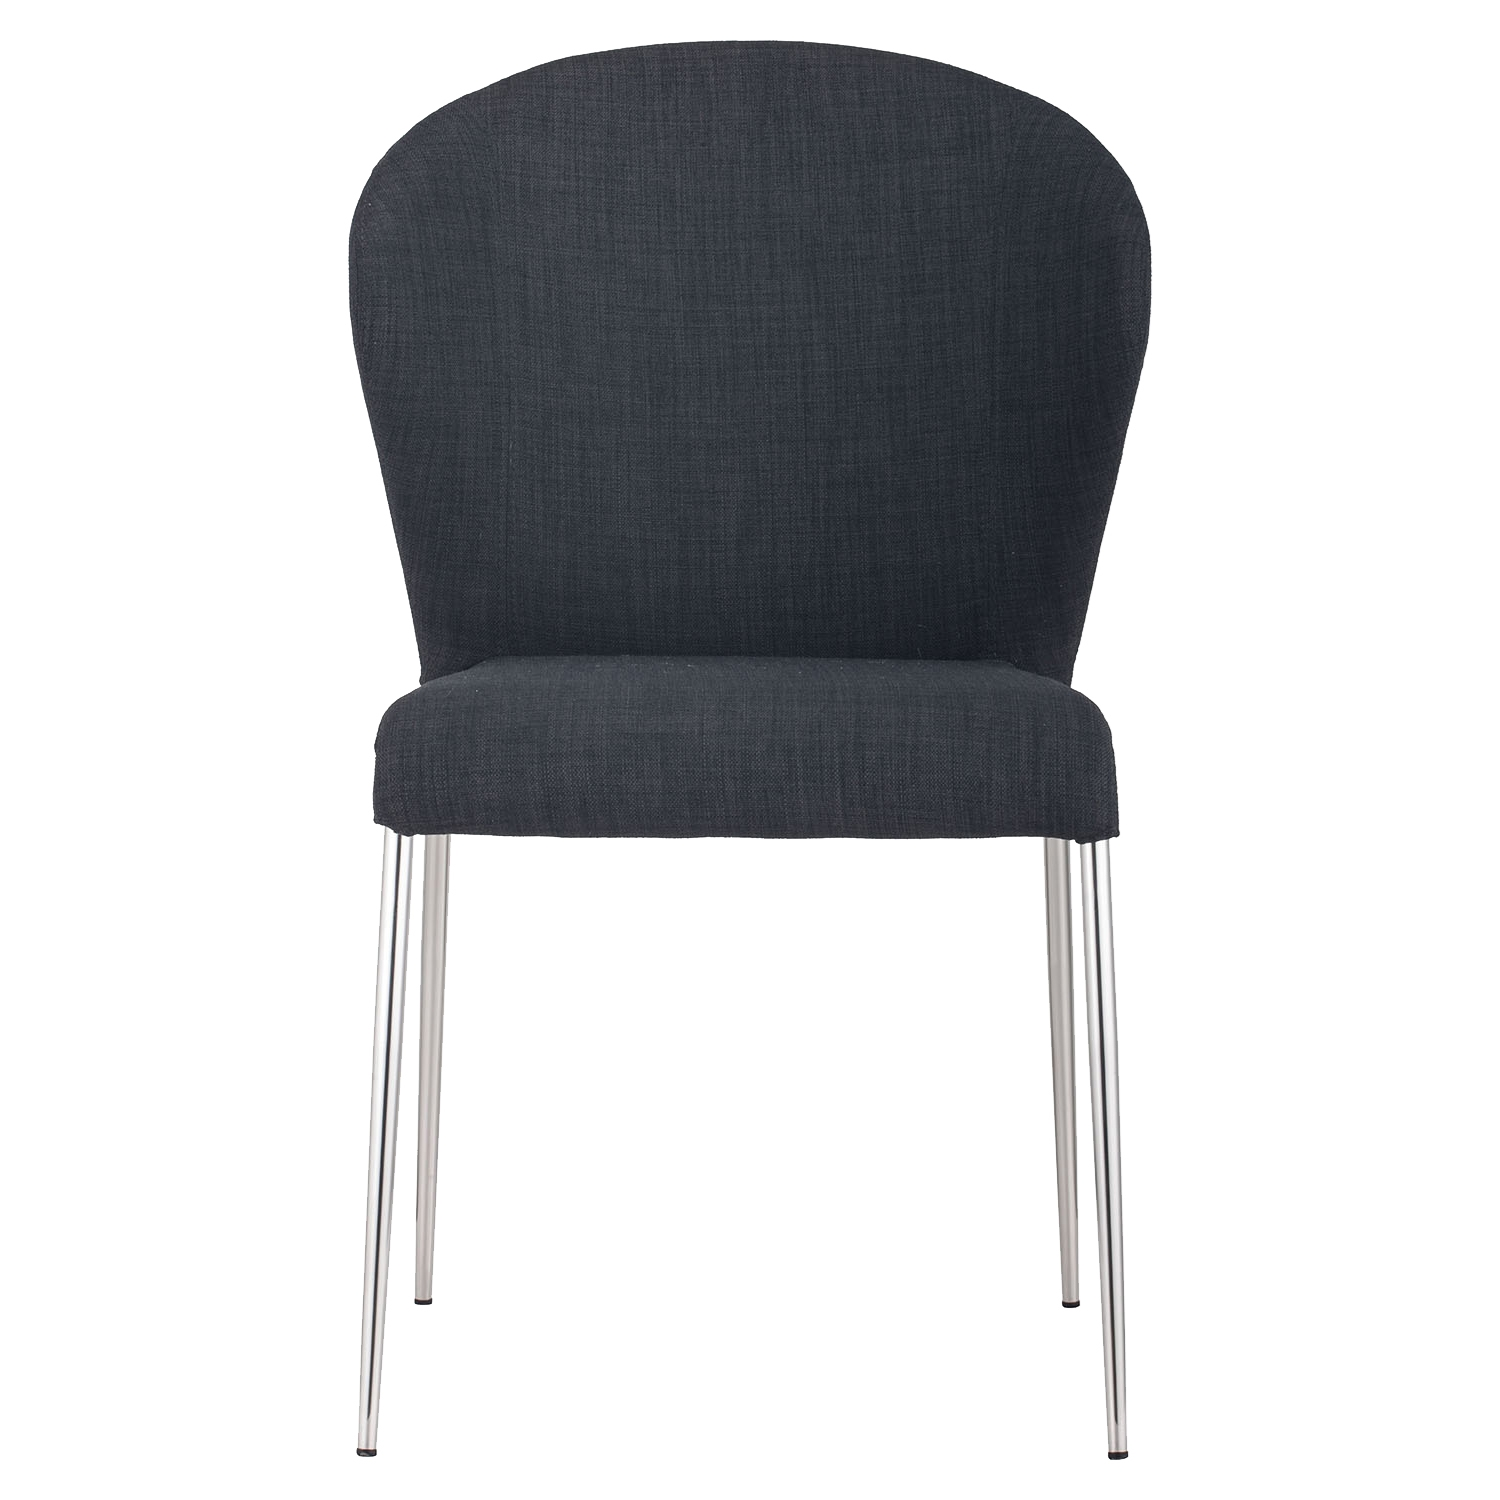 Oulu Dining Chair - Graphite